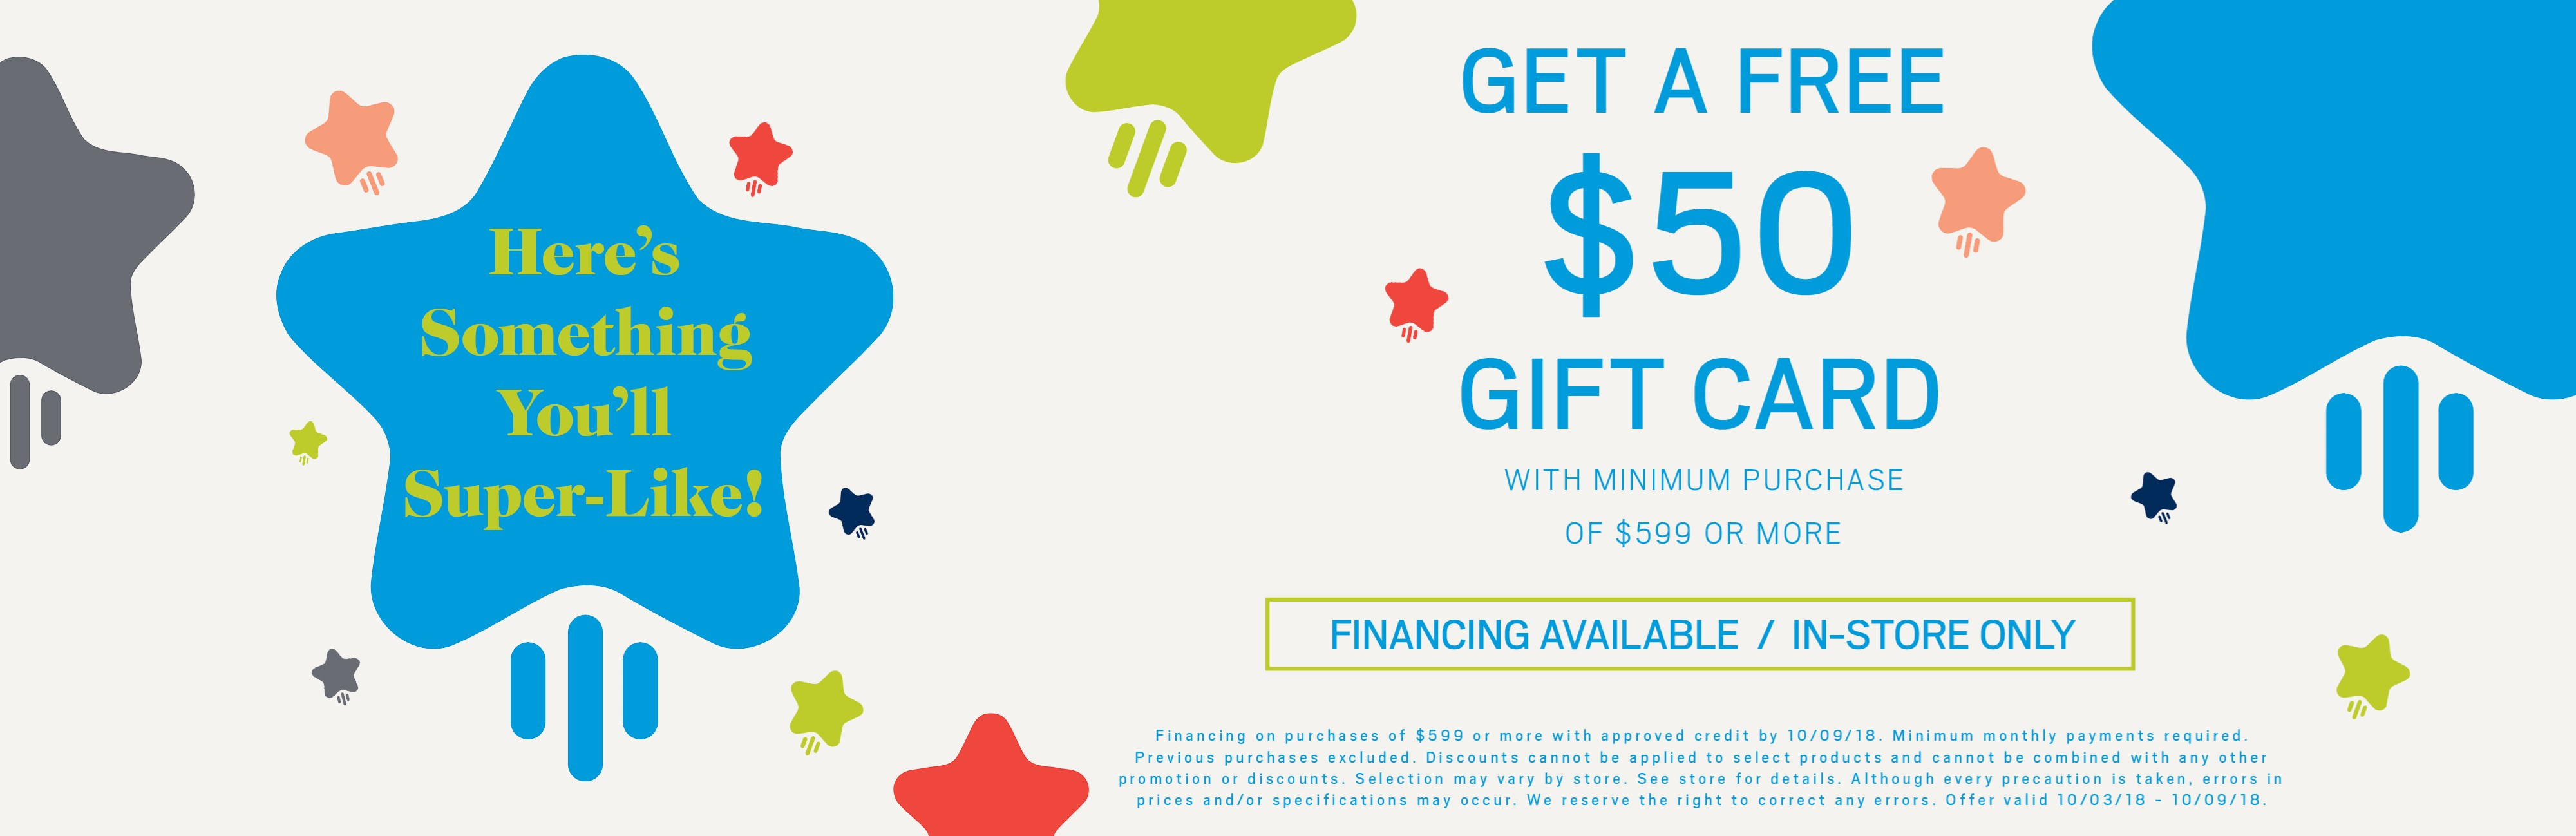 Get a free $50 gift card with minimum purchase of $599 or more. Financing available; see store for details.